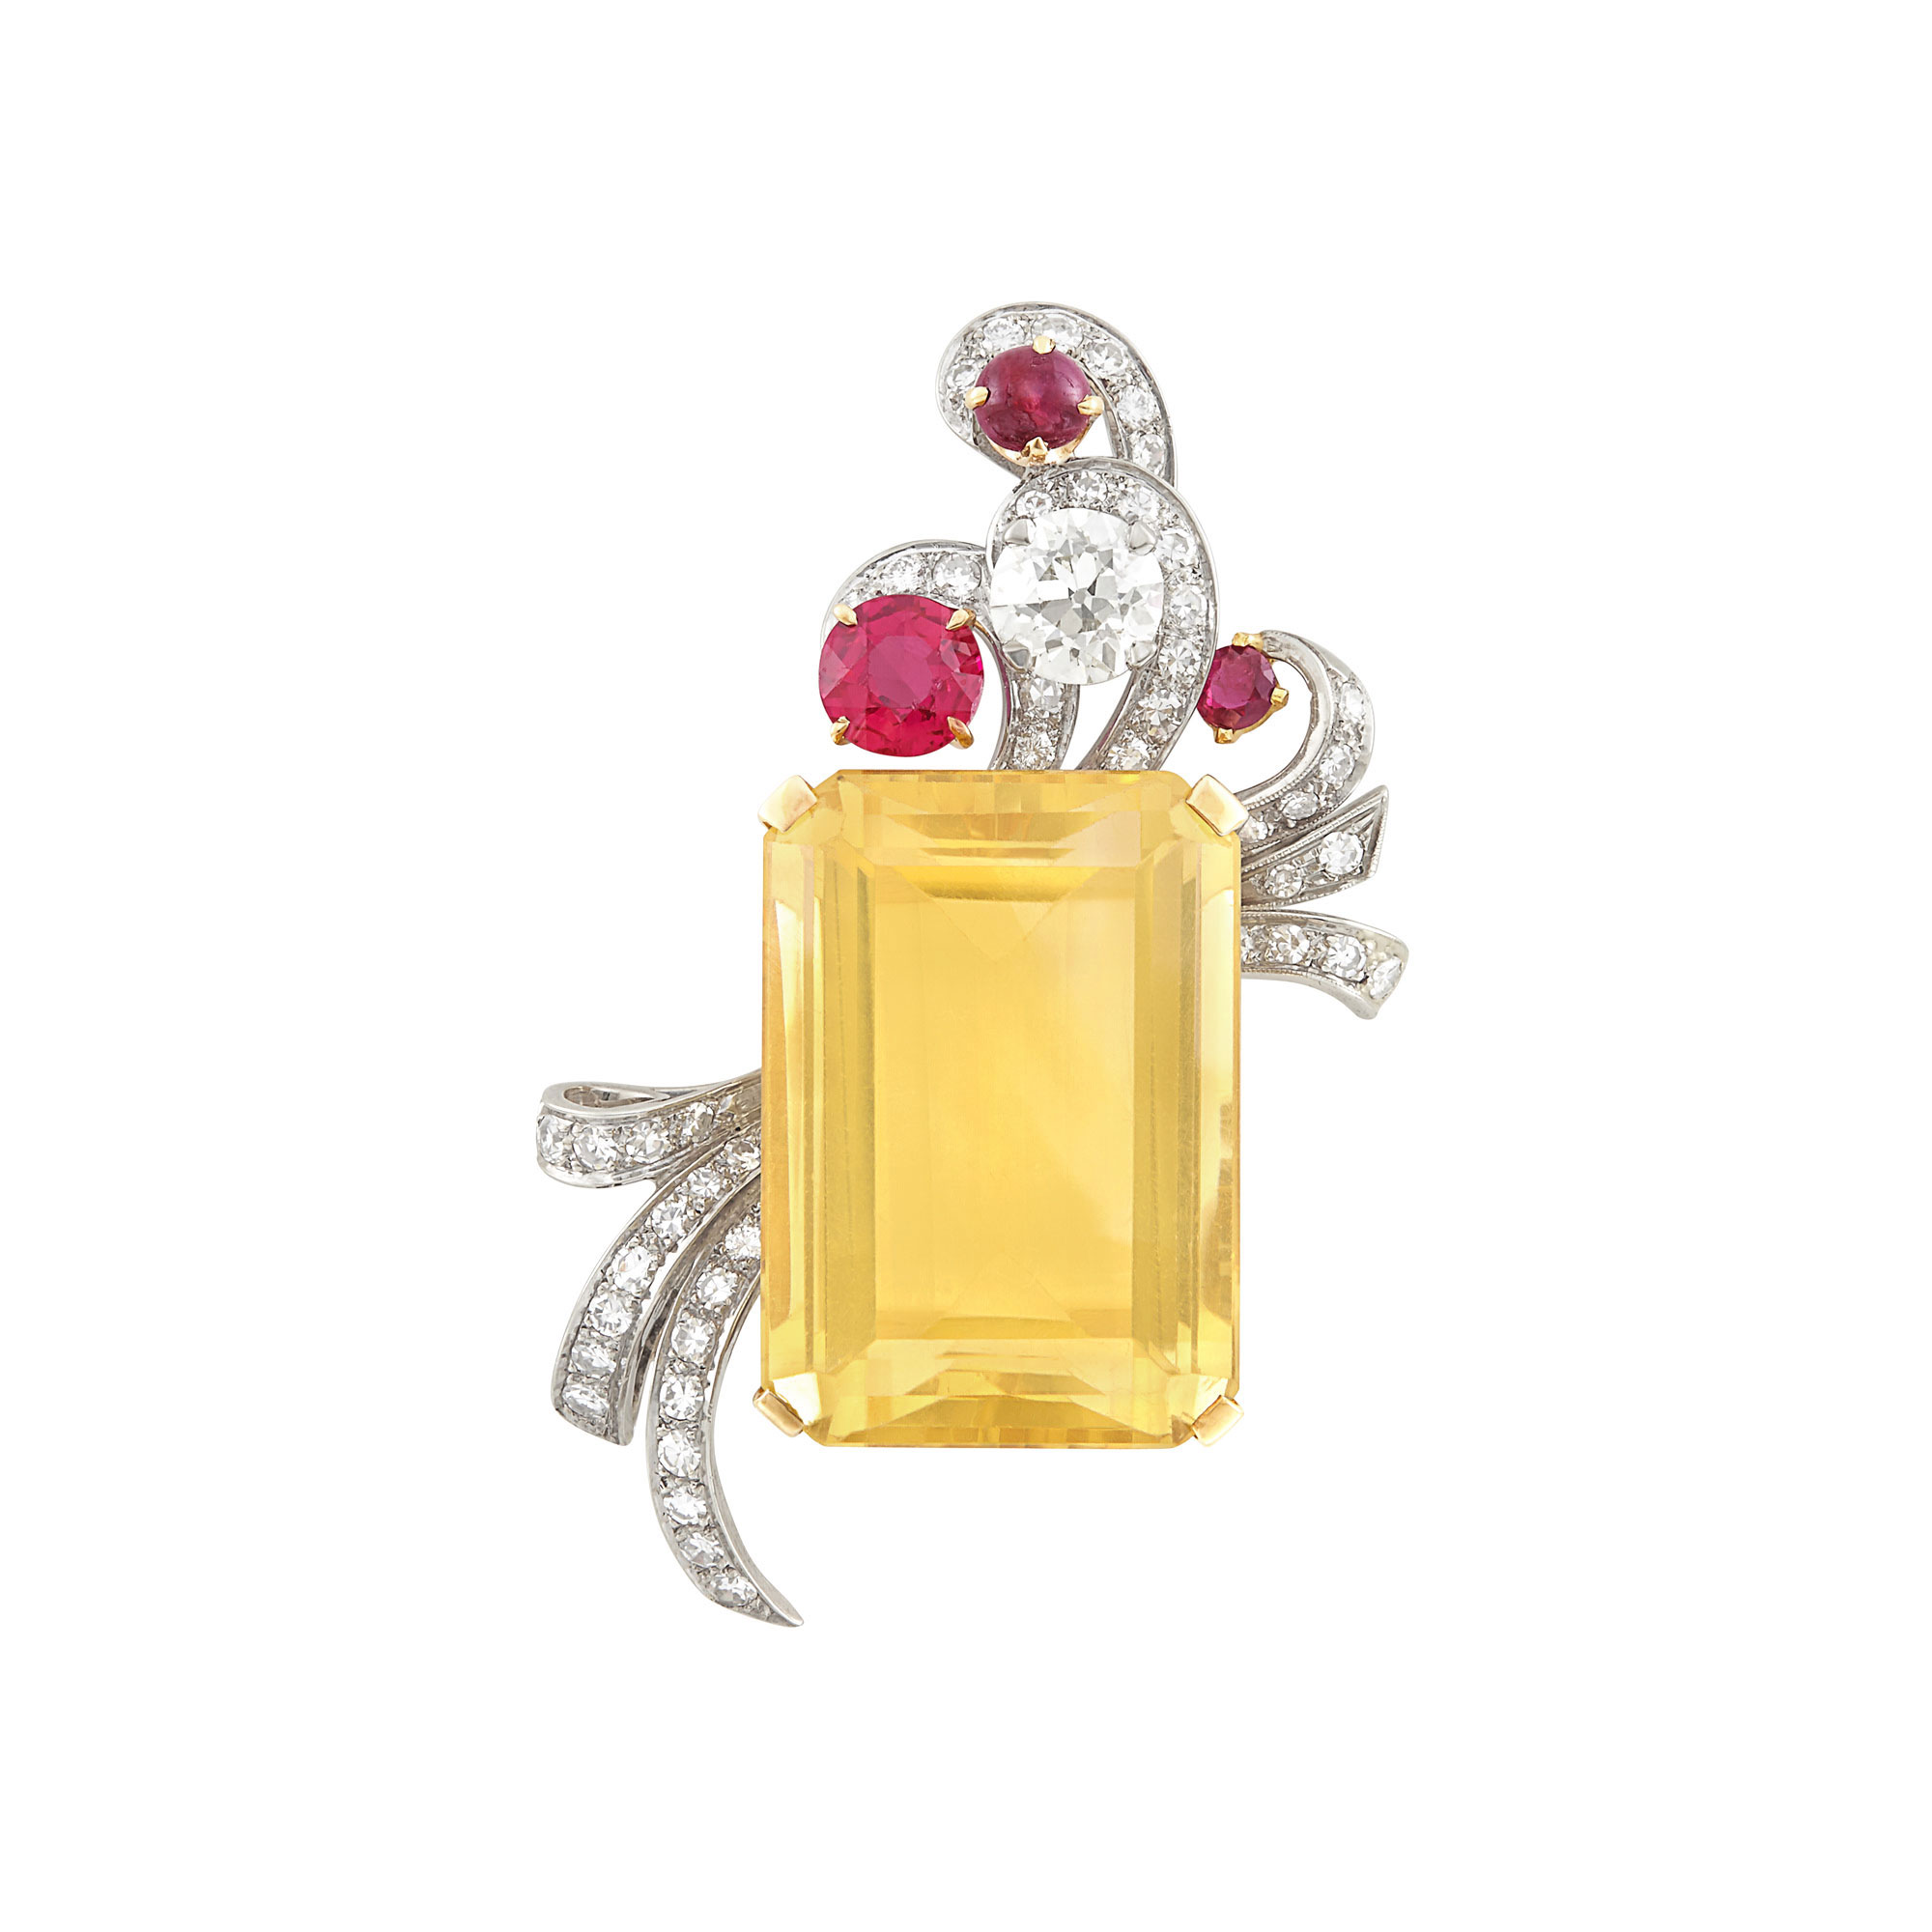 Lot image - Gold, Palladium, Citrine, Synthetic Ruby, Ruby and Diamond Brooch